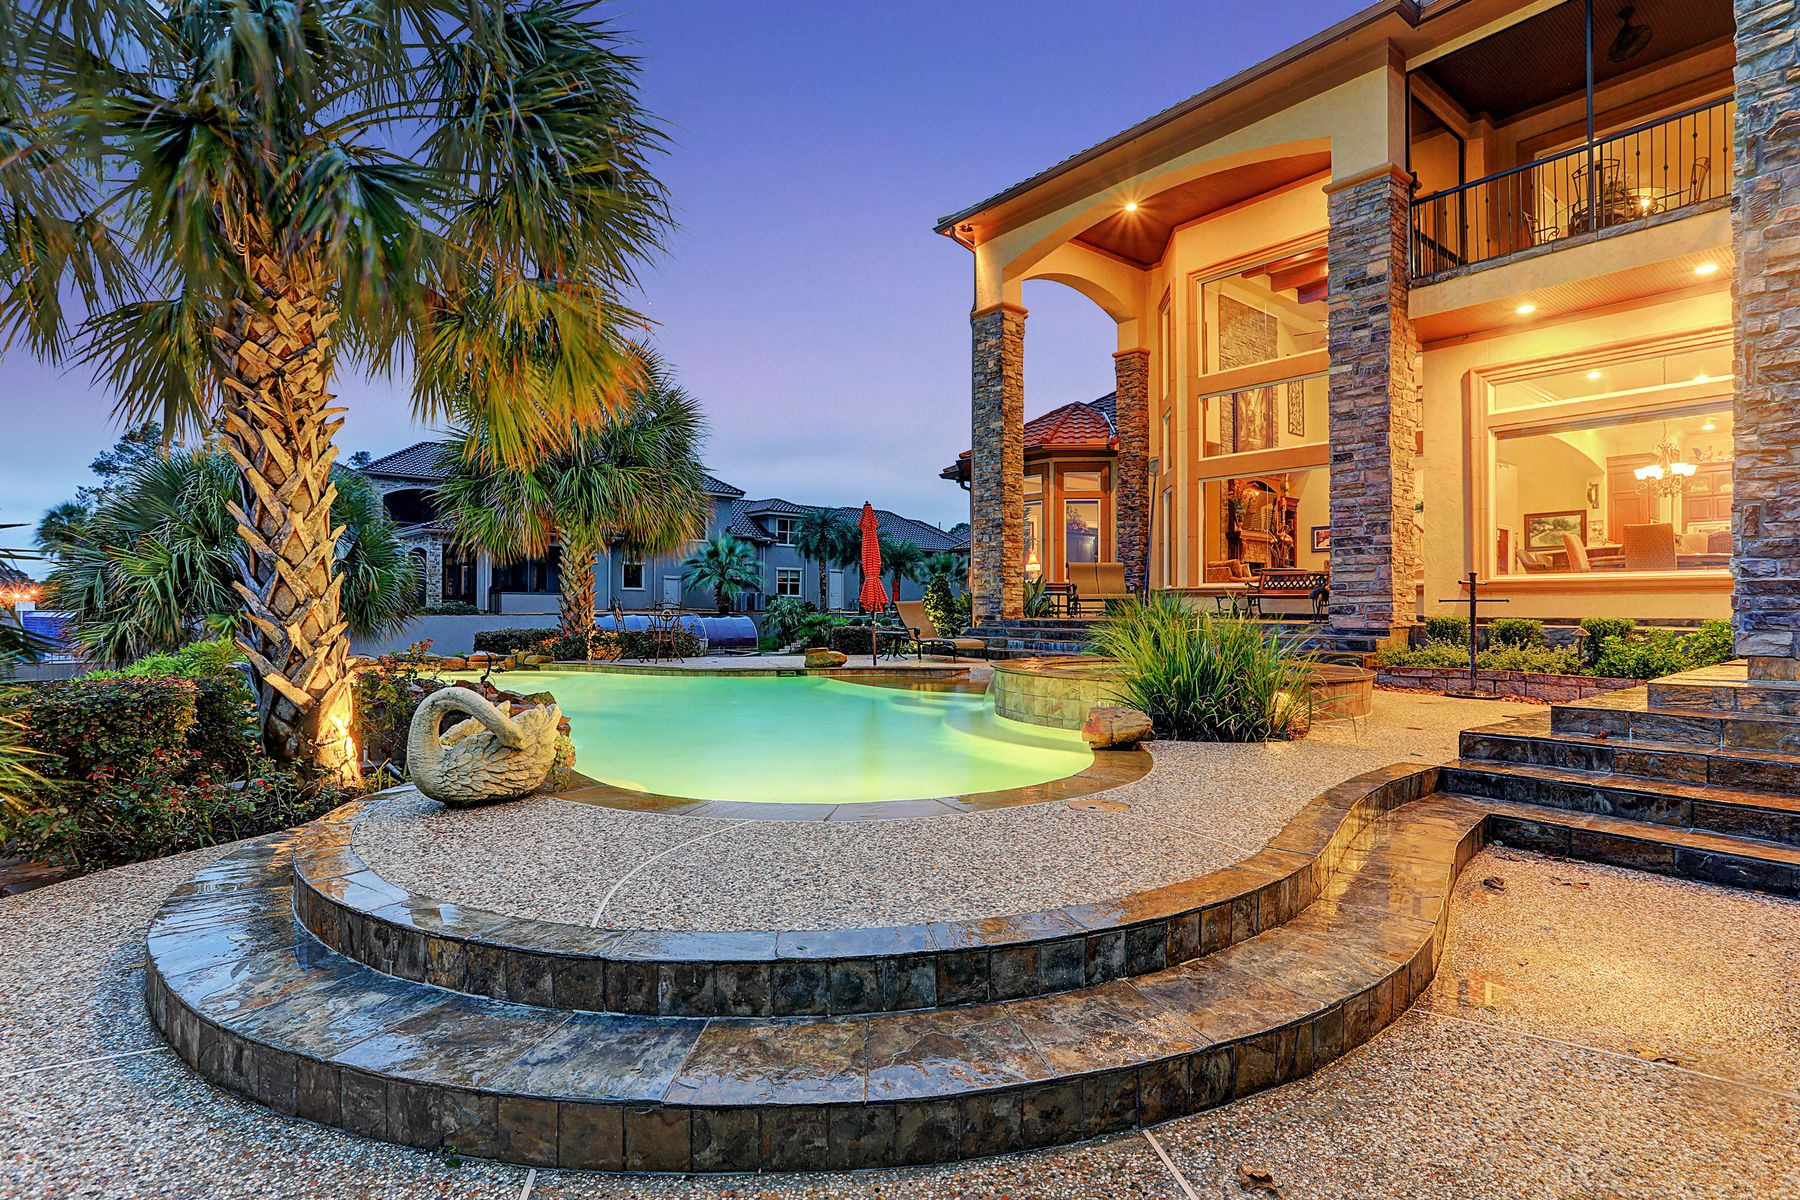 Single Family Homes for Sale at 126 Bentwater Bay Drive Montgomery, Texas 77356 United States